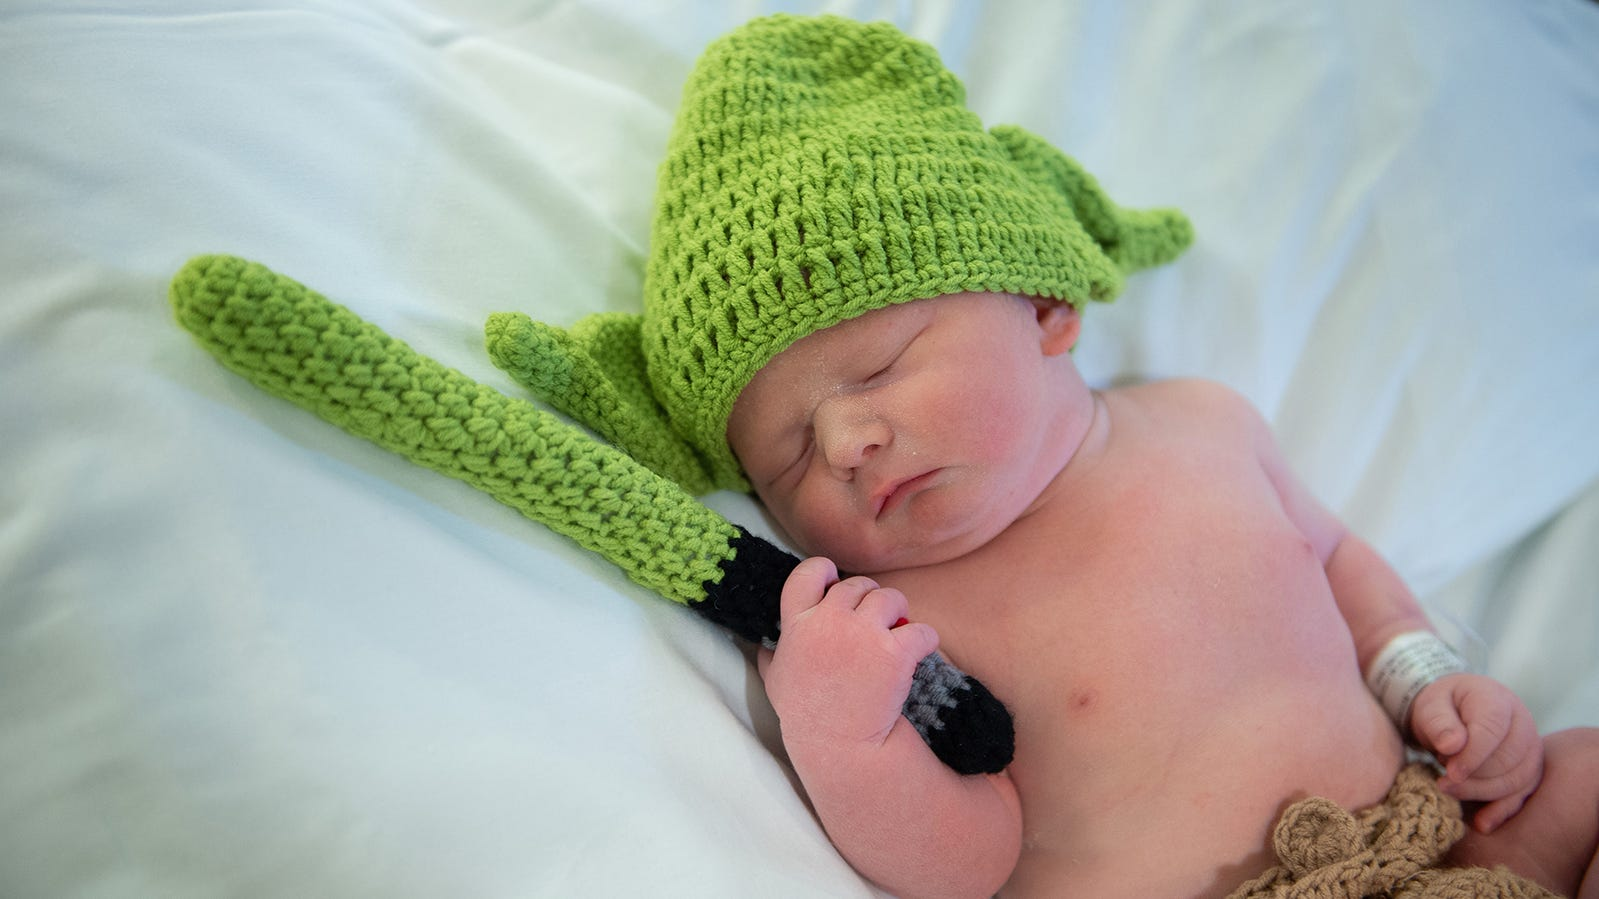 On Star Wars Day, a fan gives birth to a baby boy. His name? Luke, of course.